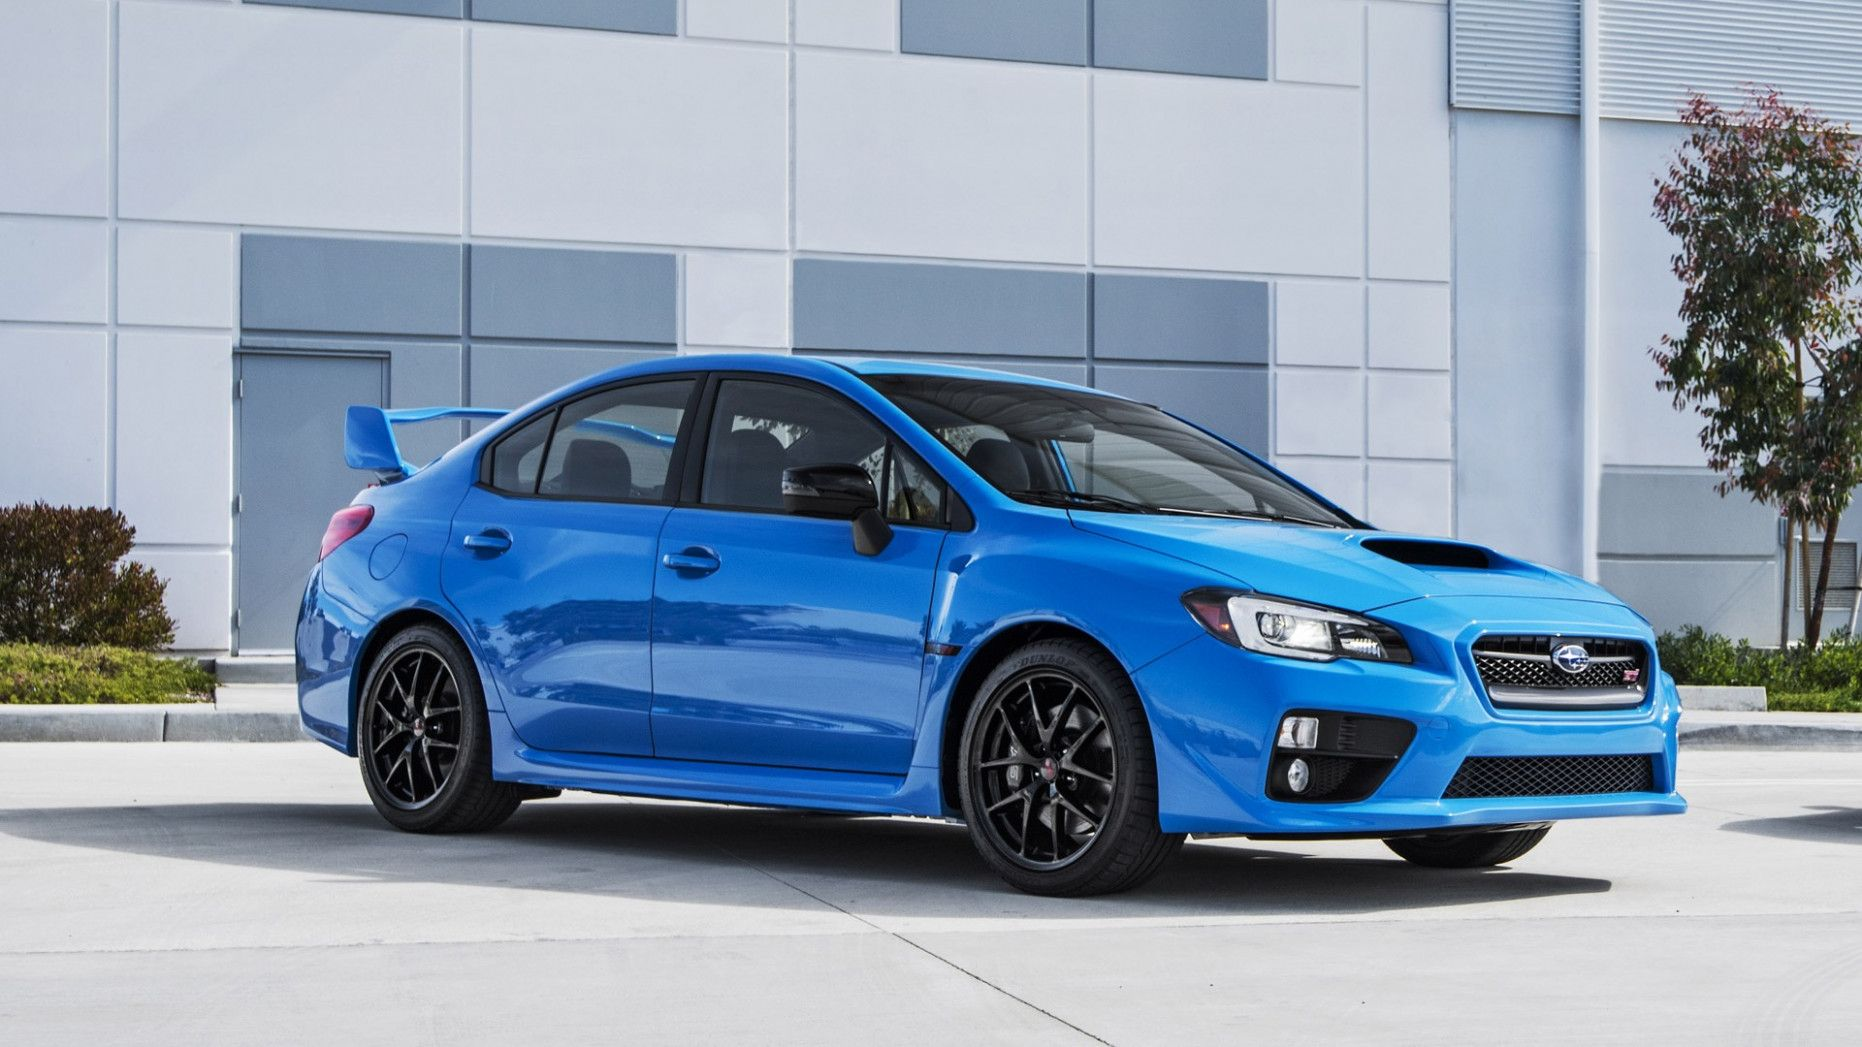 2020 Wrx Sti Hyperblue Exterior and Interior